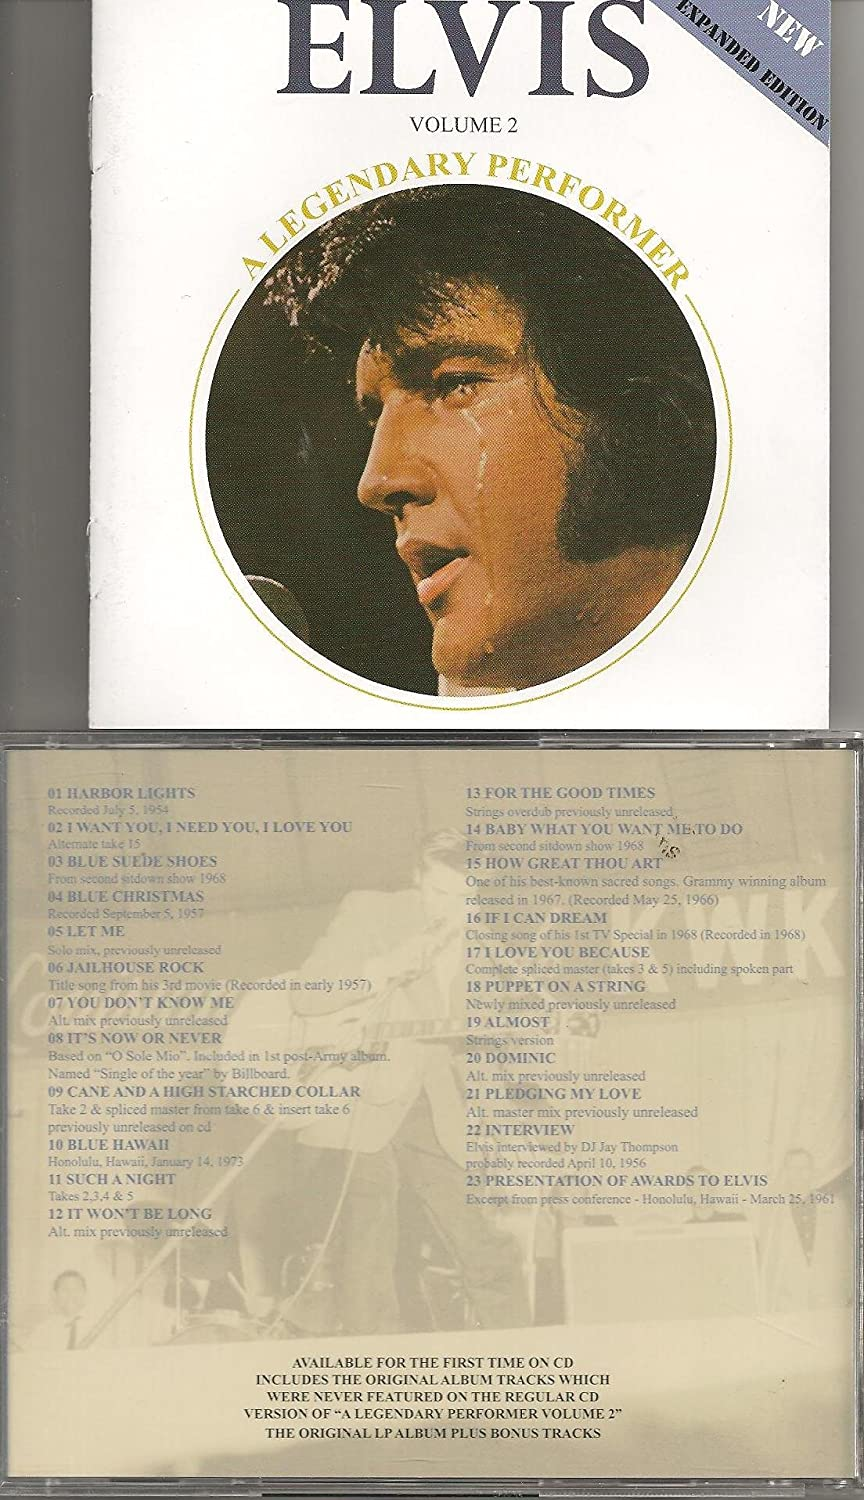 Elvis Presley Legendary Performer 2 Amazon Music How To Be Single Box  Office Solution For How